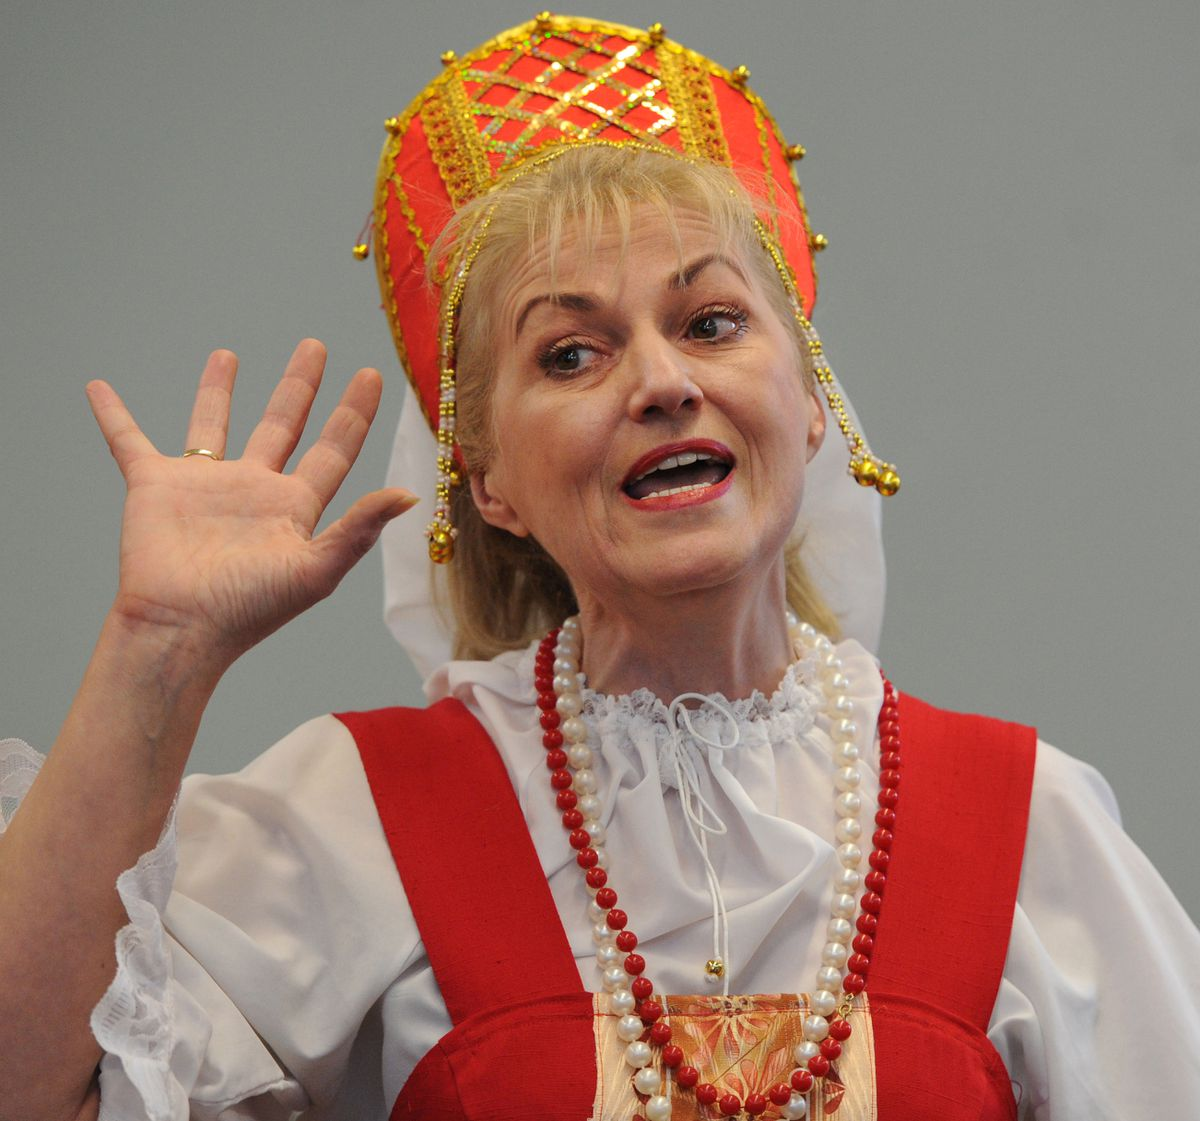 Zlata Lund sings with the Russian American Colony Singers as they perform a traditional Russian song at the Mountain View Library on Thursday. (Bill Roth / Alaska Dispatch News)